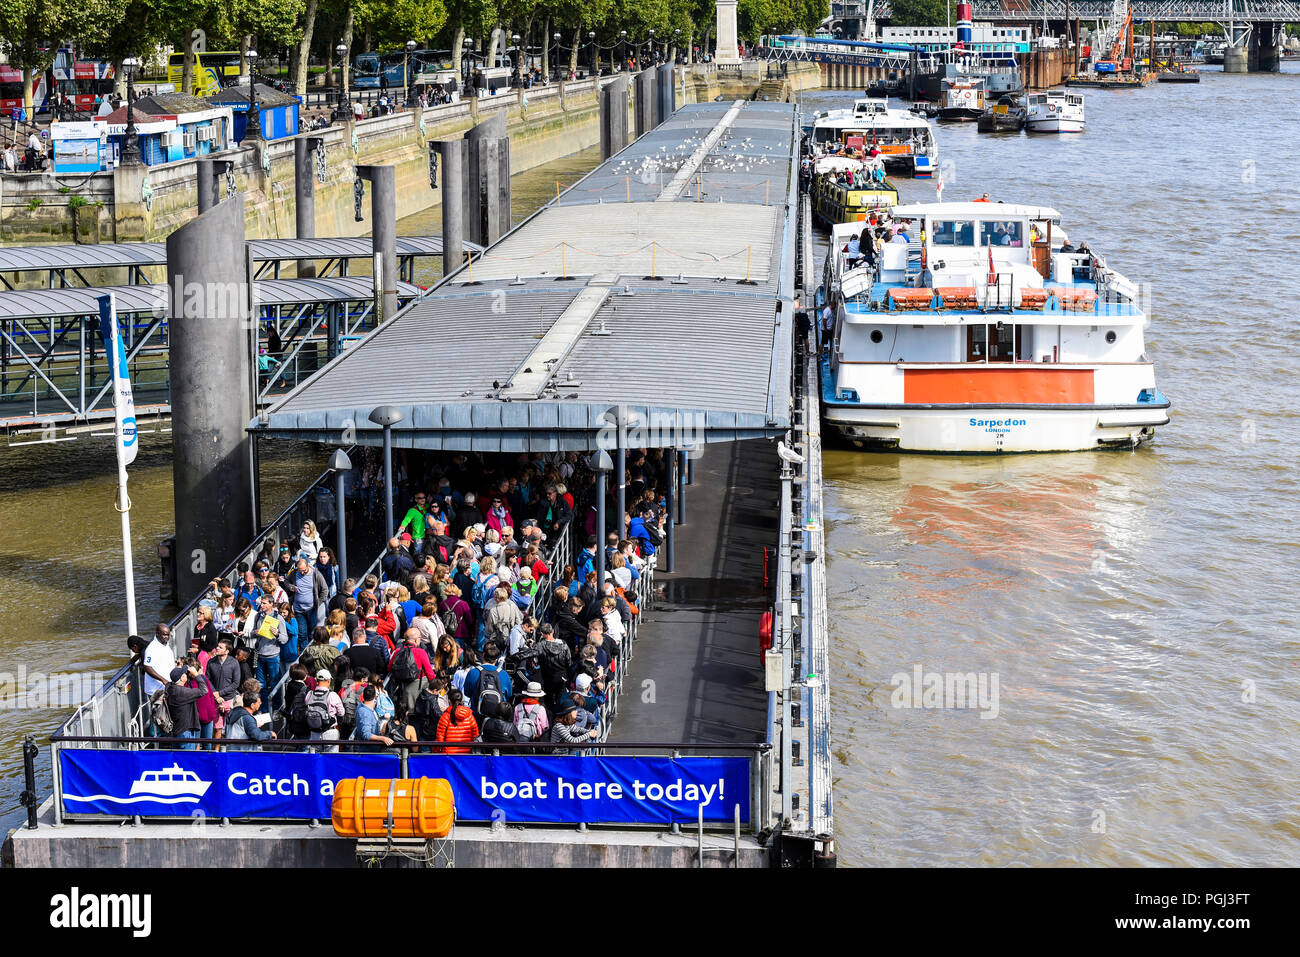 Westminster Pier jetty, Victoria Embankment, London, UK. Passengers queue to embark on a river bus, riverbus on the River Thames. Sarpedon vessel - Stock Image